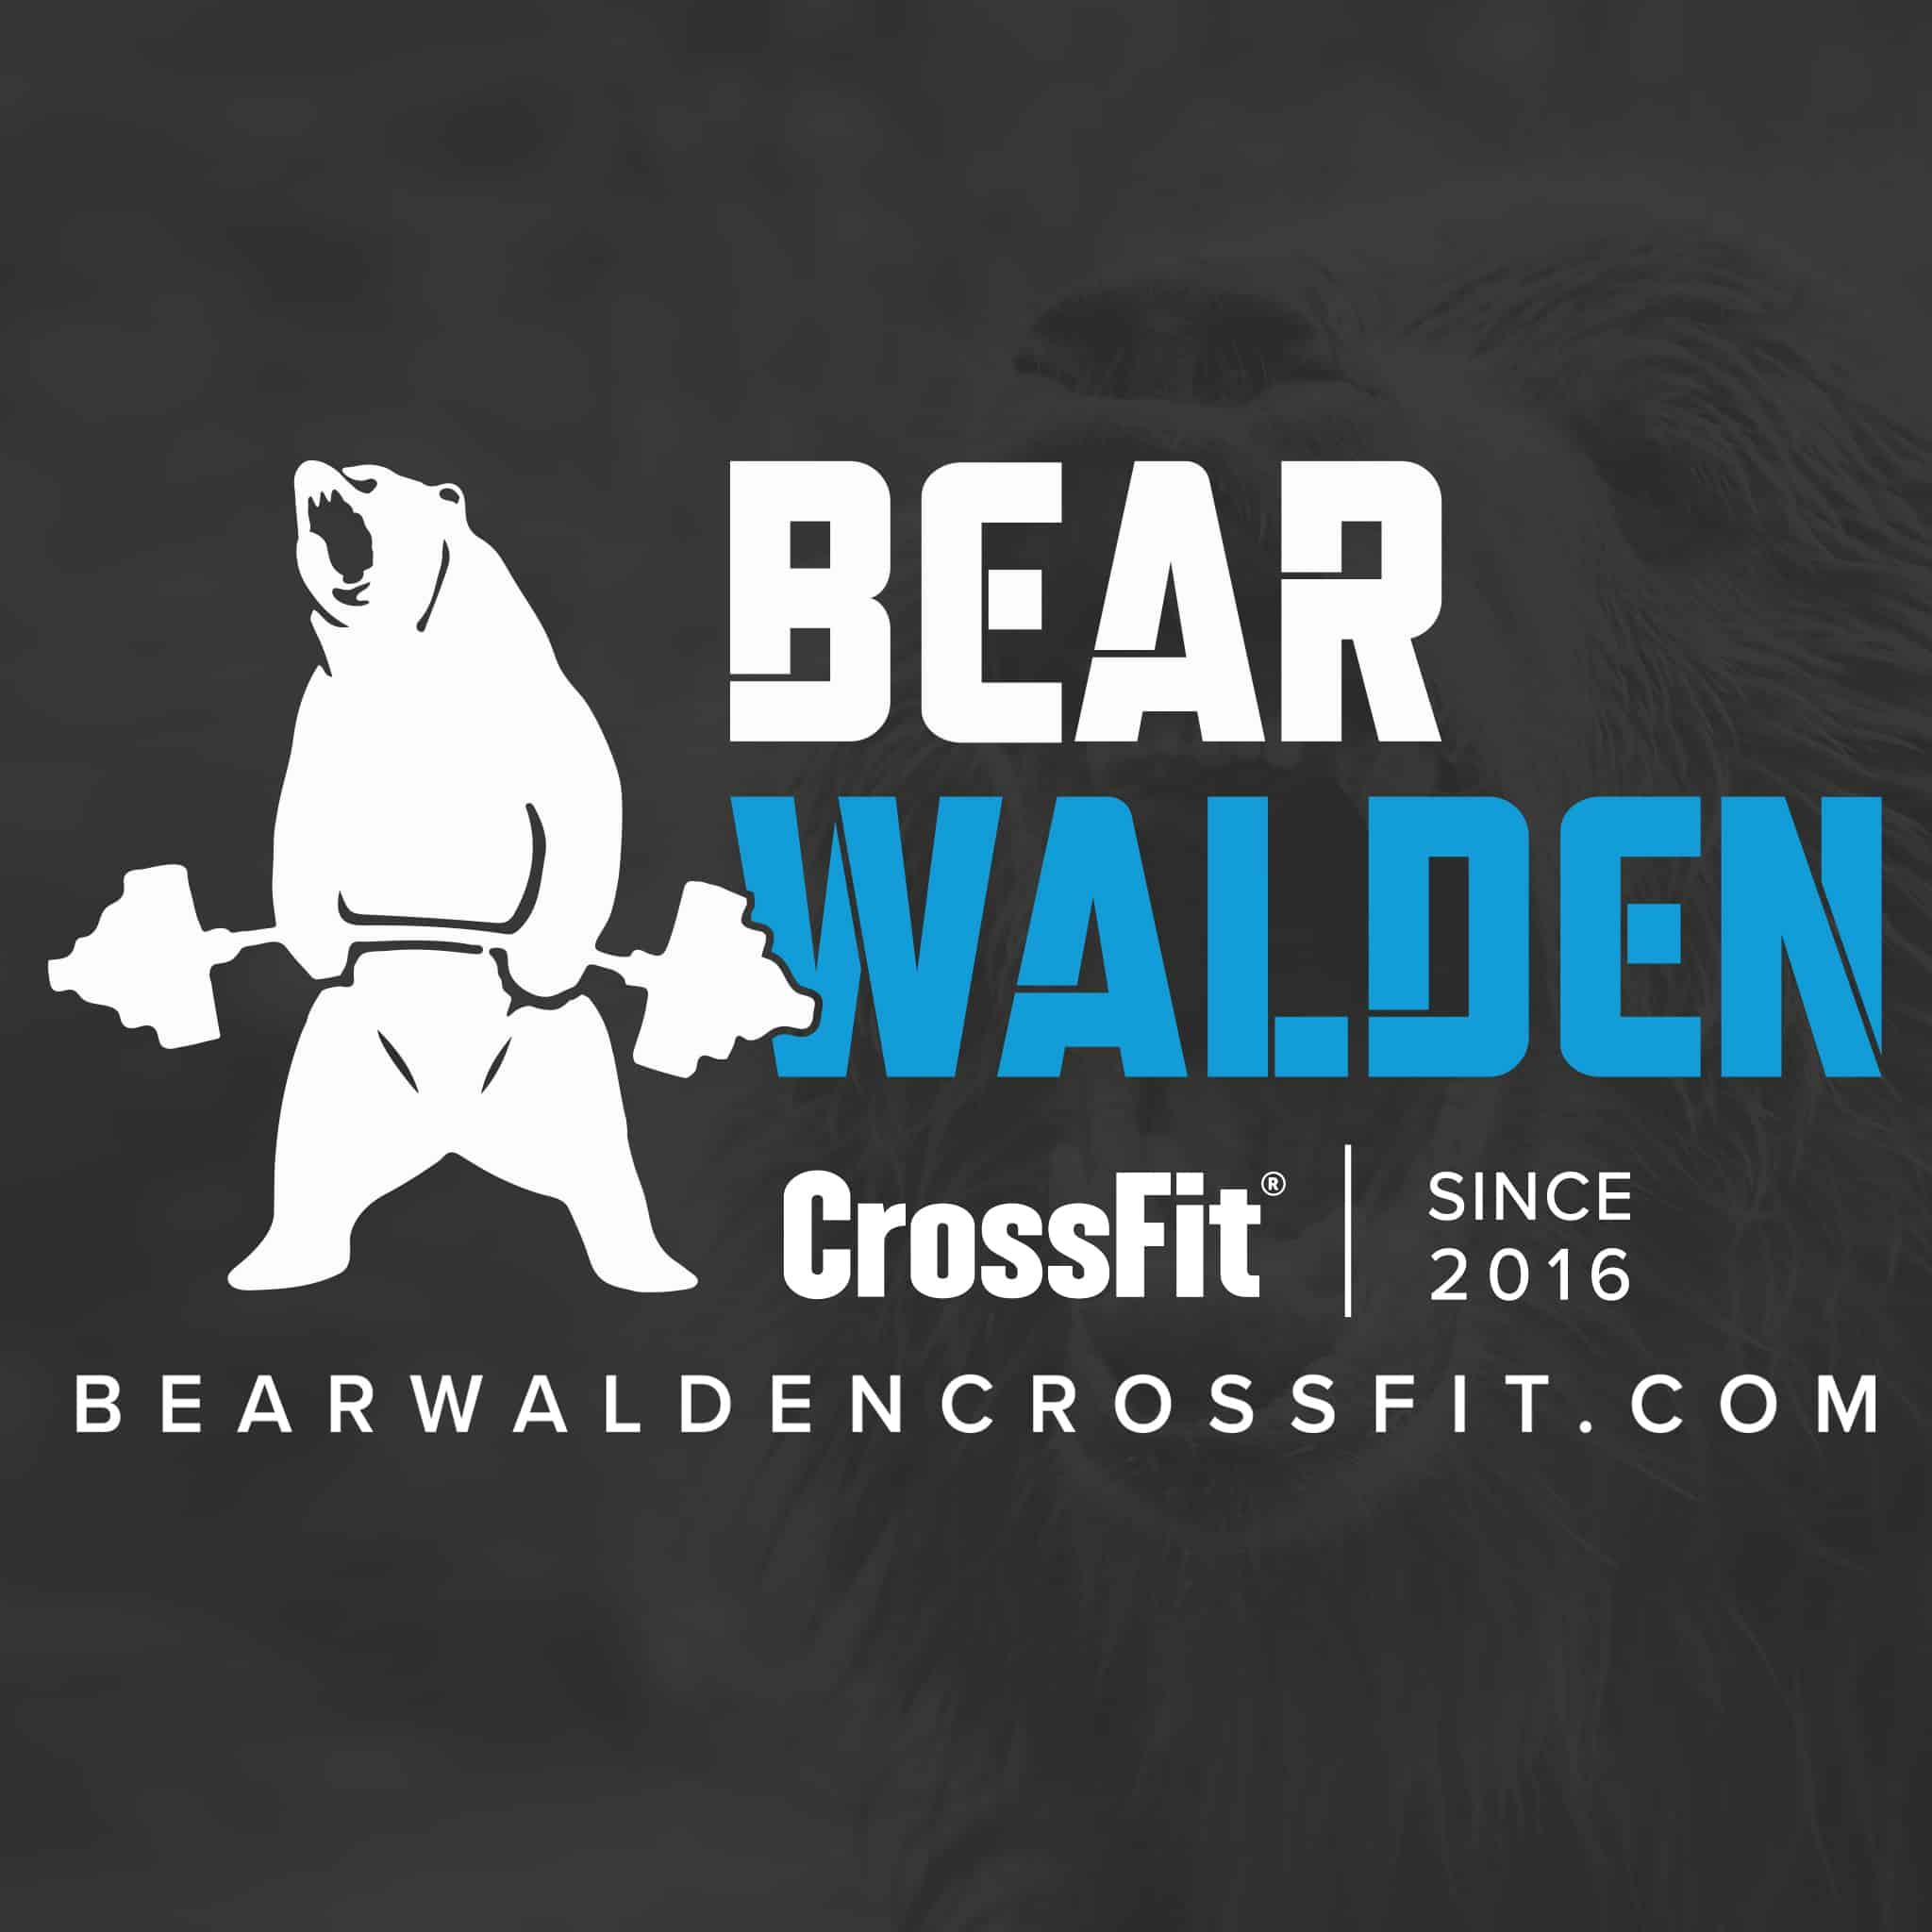 #BEARSATHOME BODY WEIGHT WORKOUT MAY 25